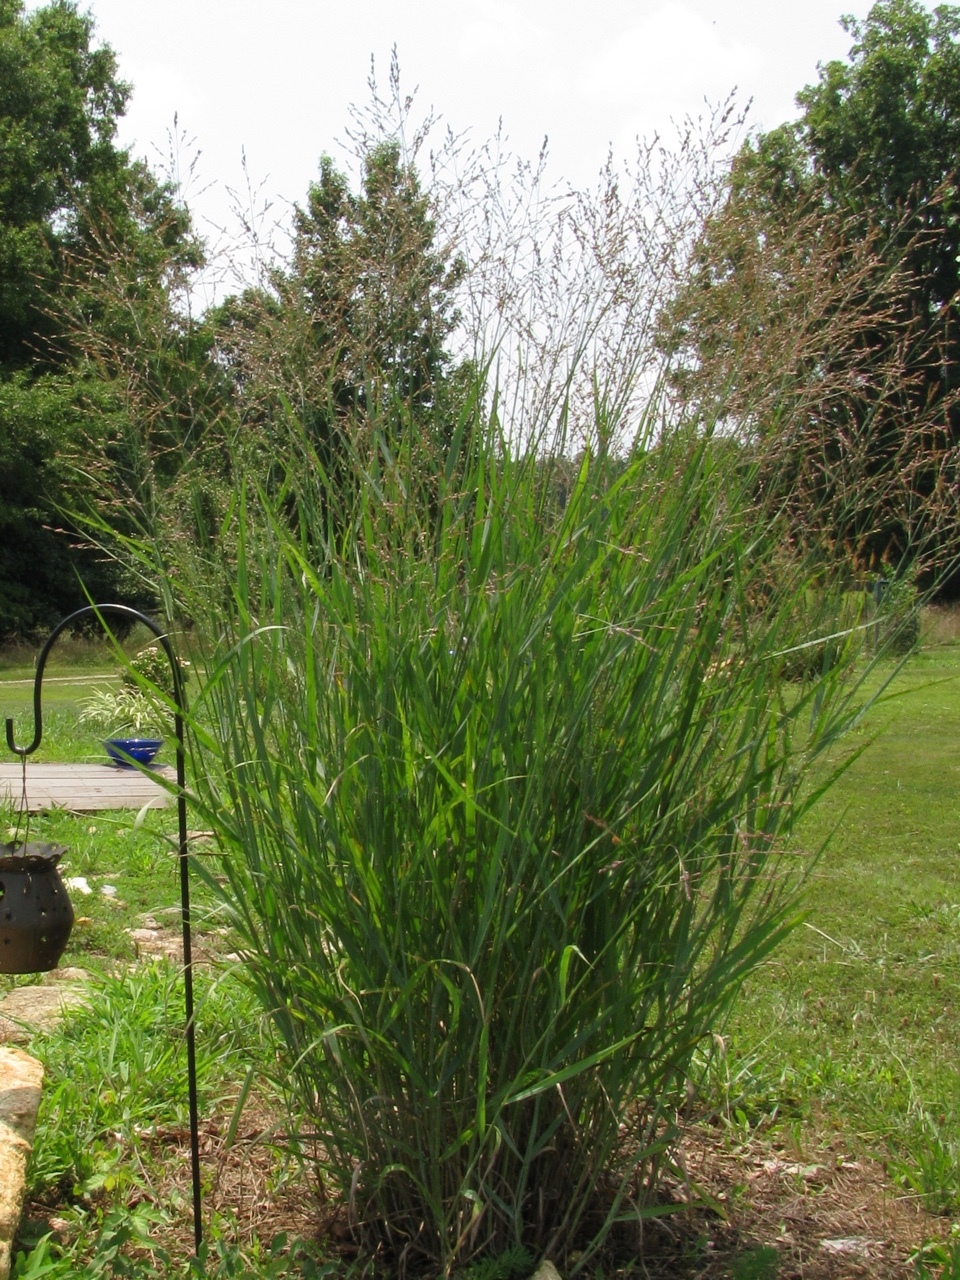 The Scientific Name is Panicum virgatum. You will likely hear them called Switchgrass. This picture shows the Flowering during the summer with lovely delicate panicles. of Panicum virgatum